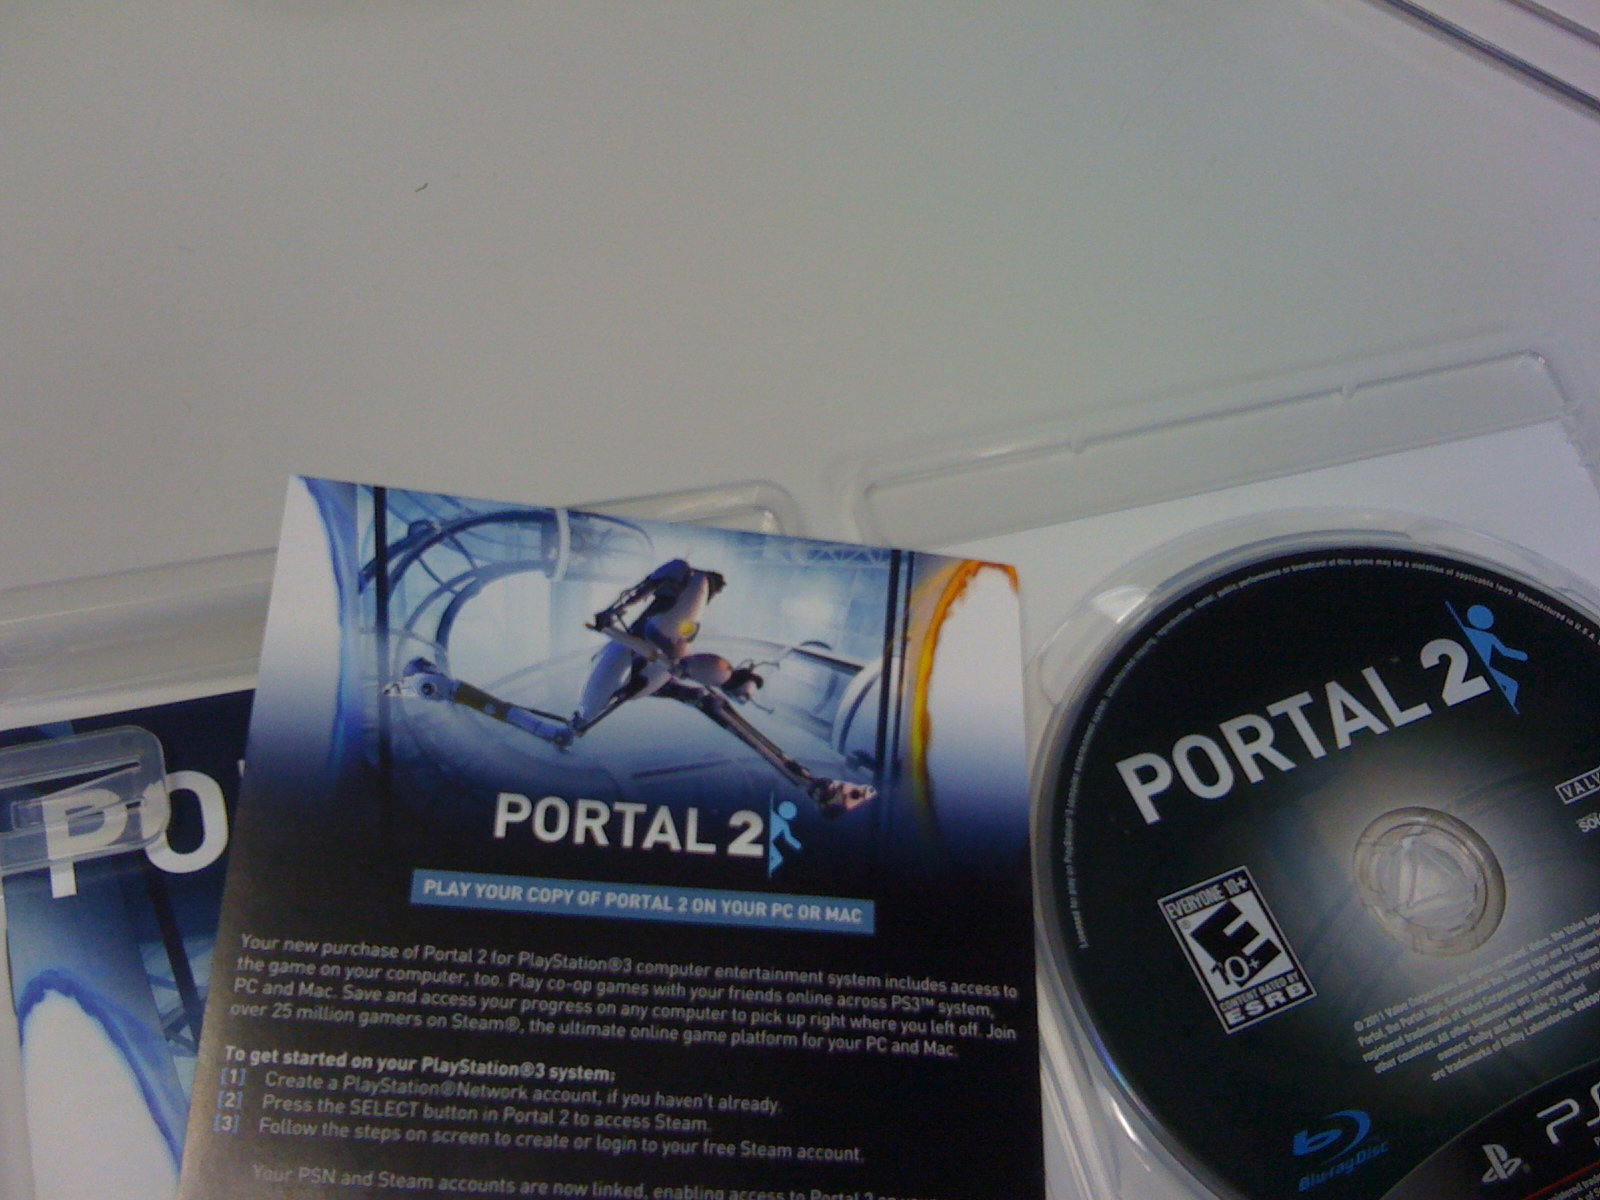 Gameritis: Portal 2 (and Steam copy) arrives promptly